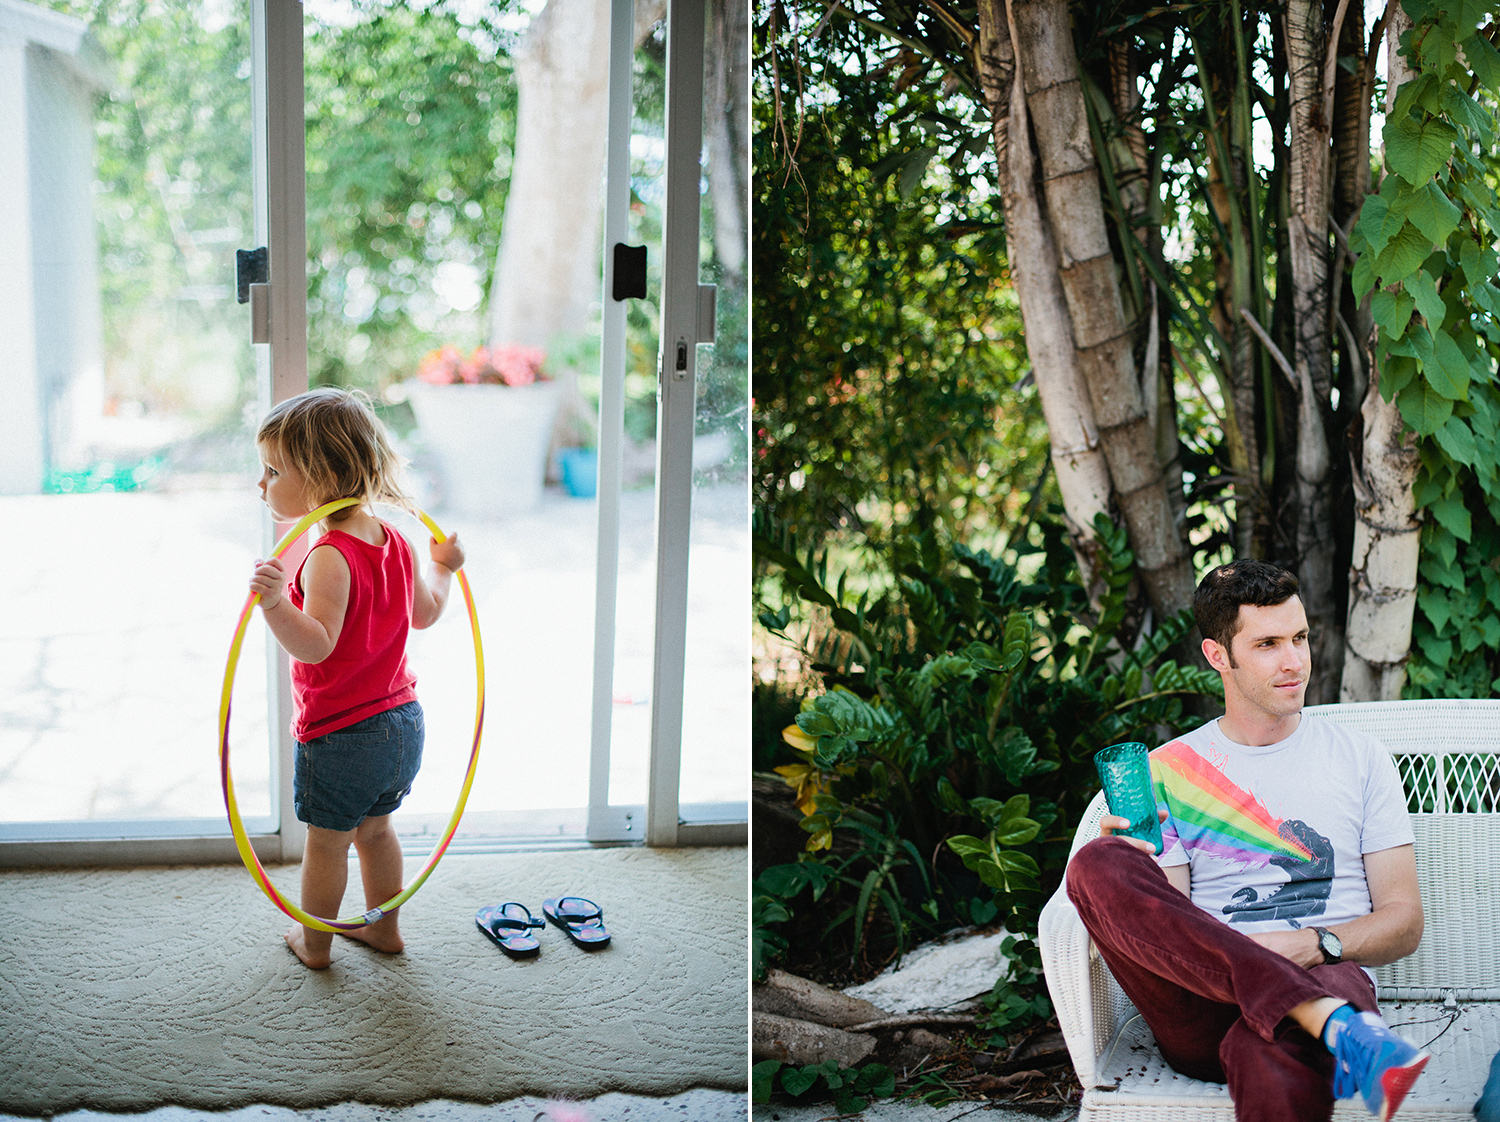 st_augustine_family_photographer_015.jpg